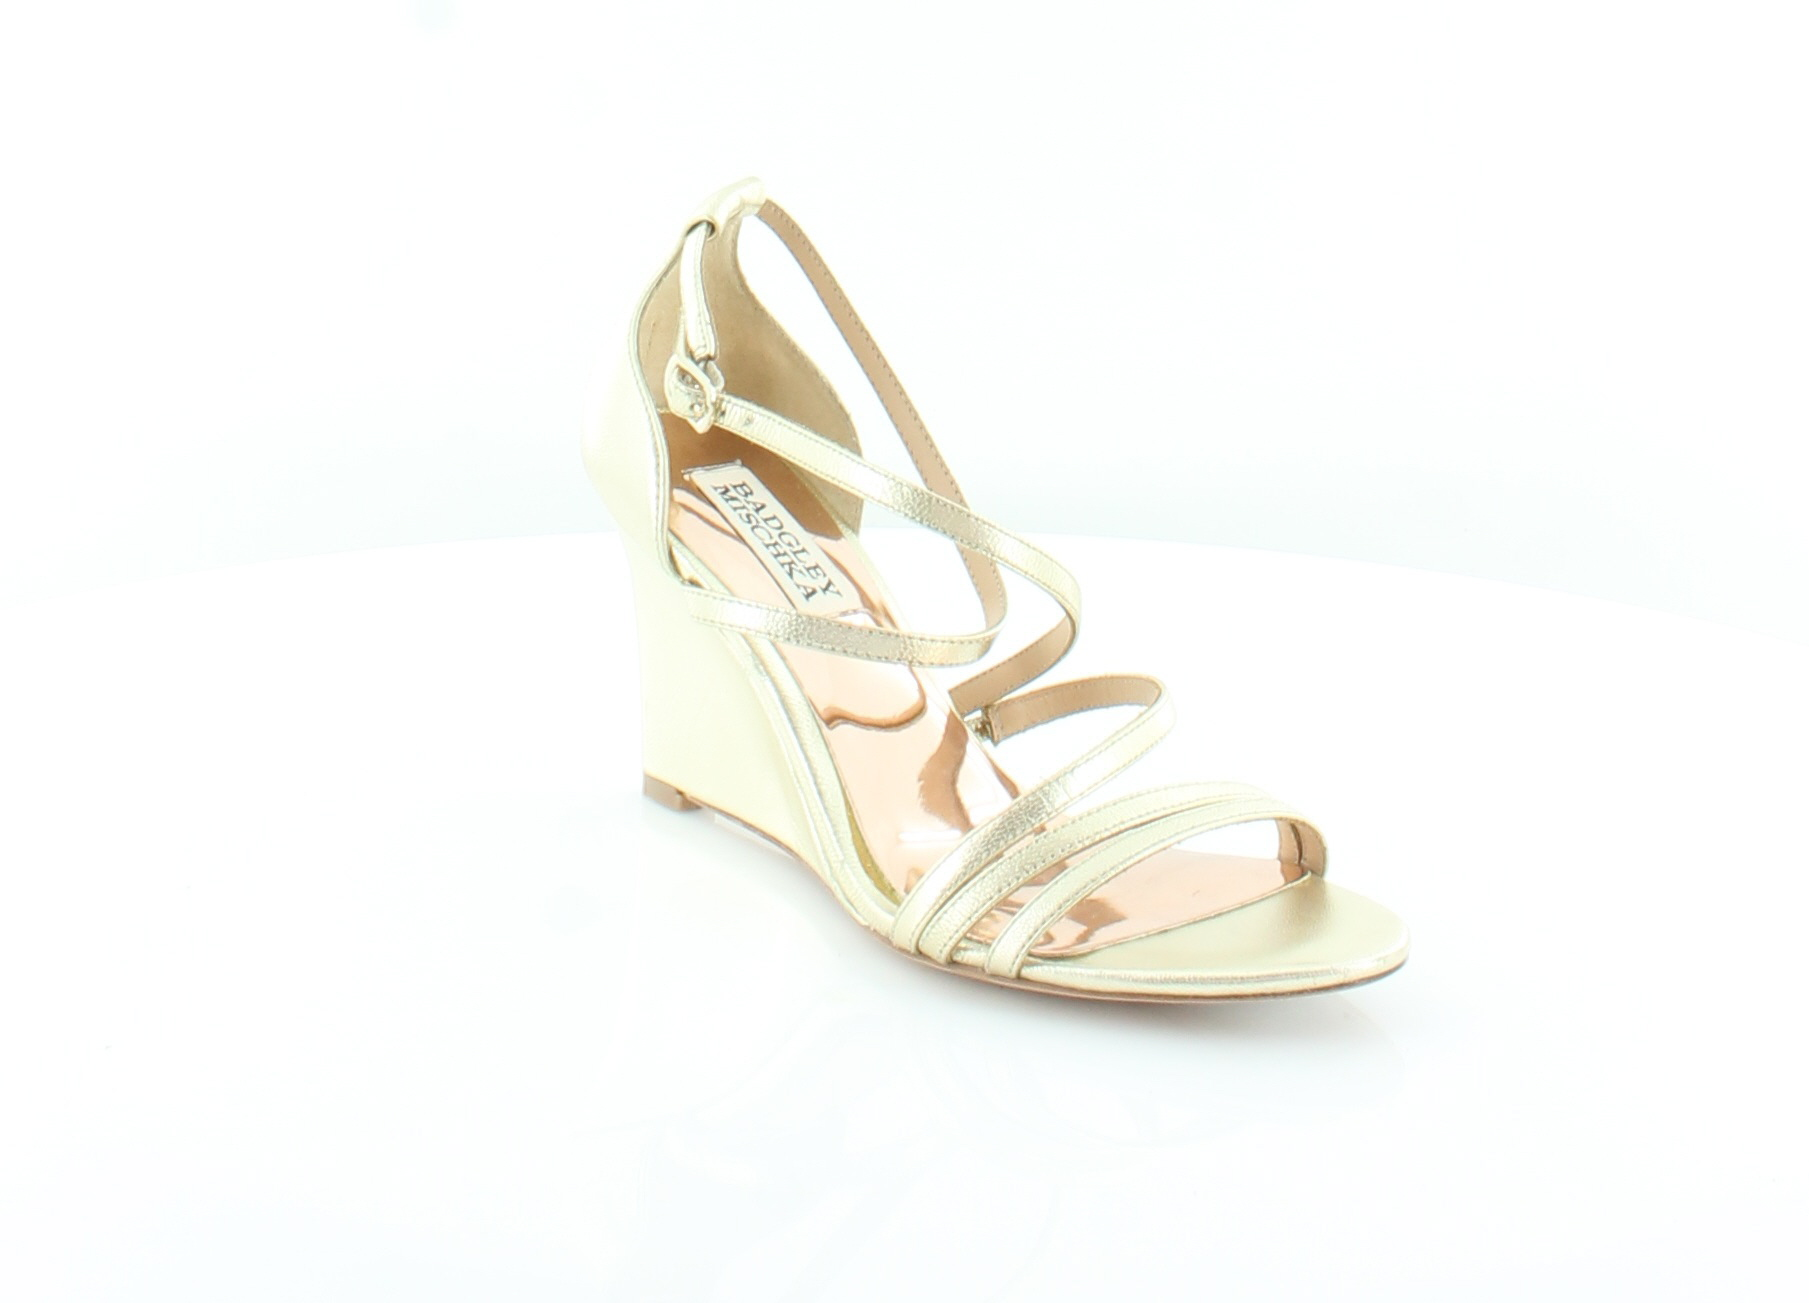 Badgley Mischka Bonanza gold Womens shoes shoes shoes Size 5.5 M Sandals MSRP  198 193eae